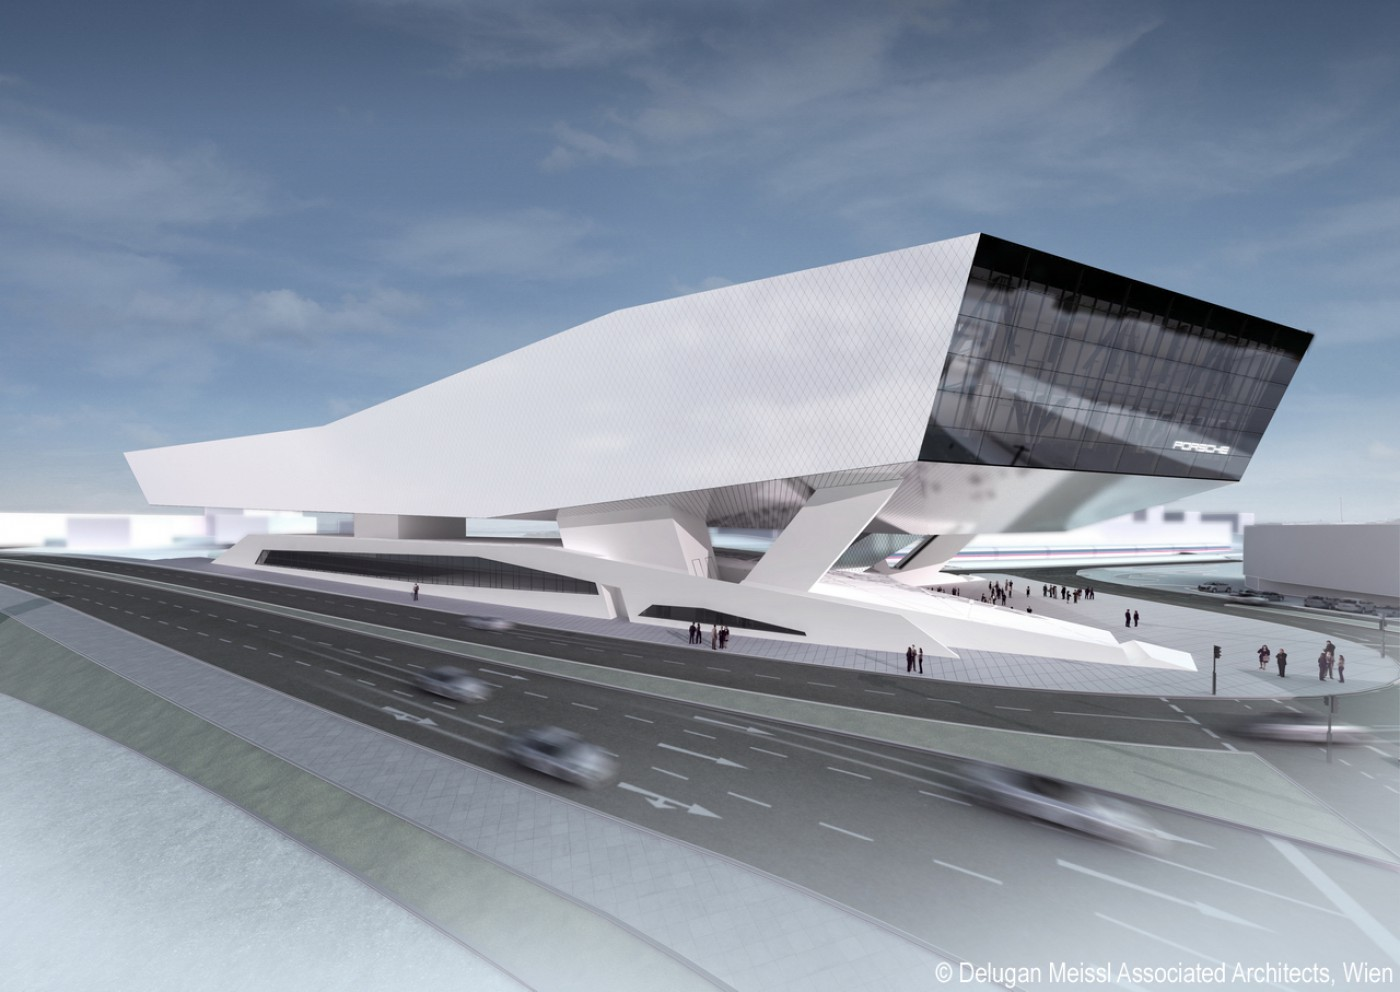 npm_Porschemuseum_bild_01_mit_copyright_Delugan Meissl Associated Architects_1400x0